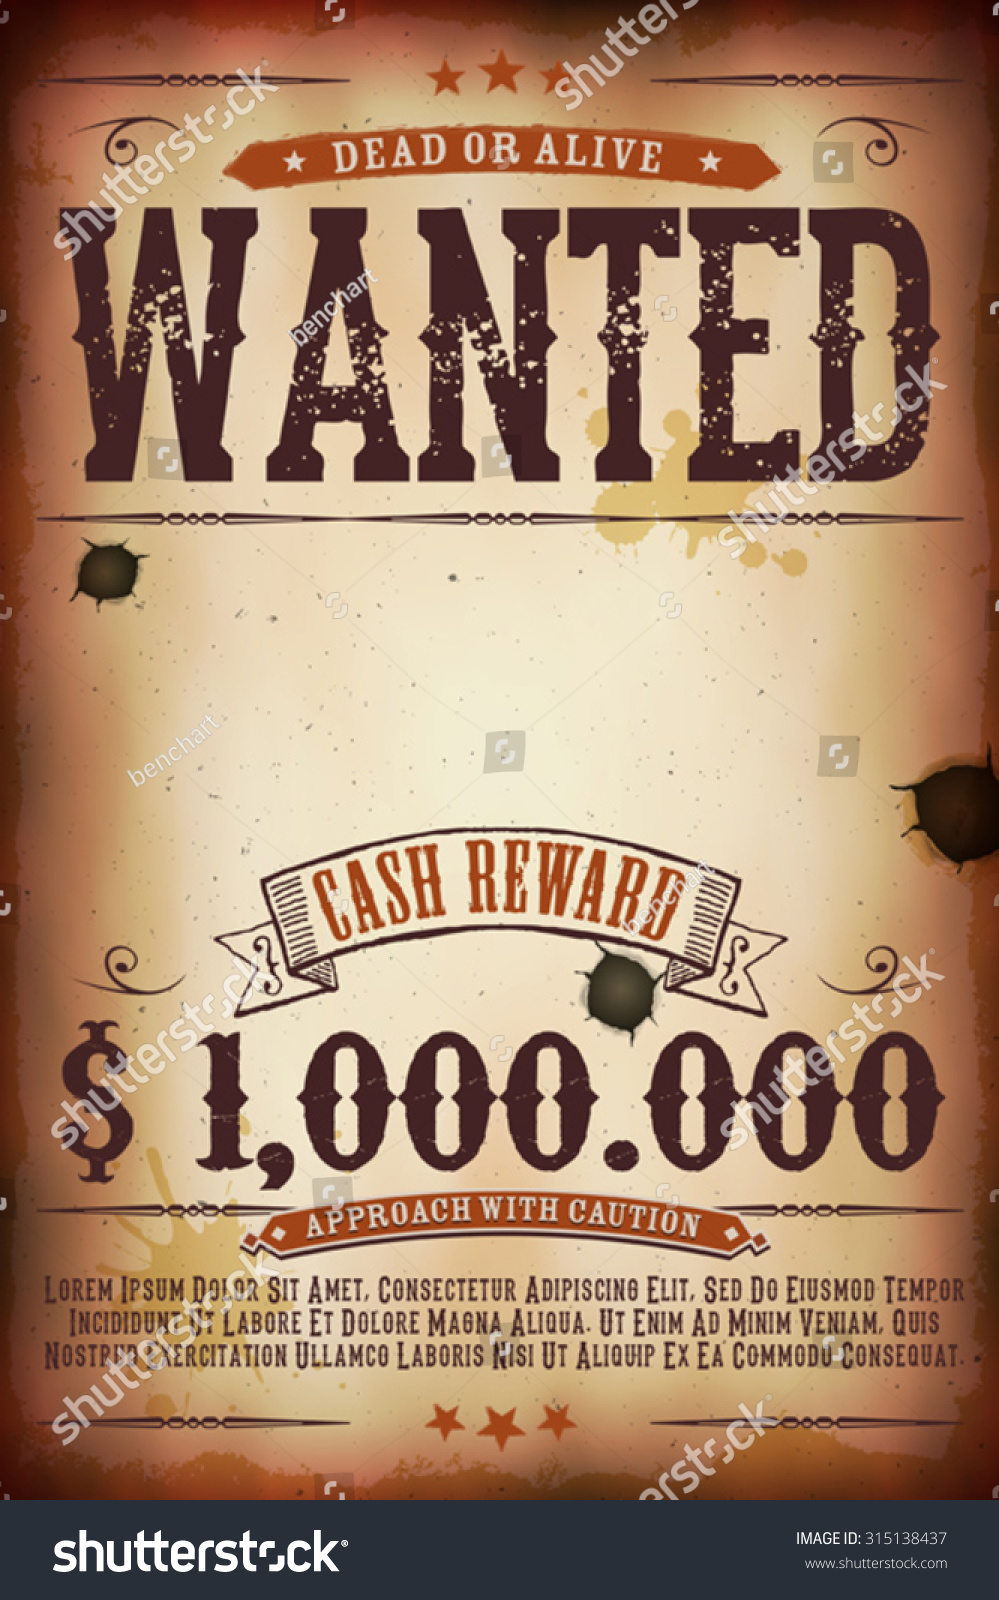 Wanted Vintage Western Poster Illustration Vintage Stock Vector